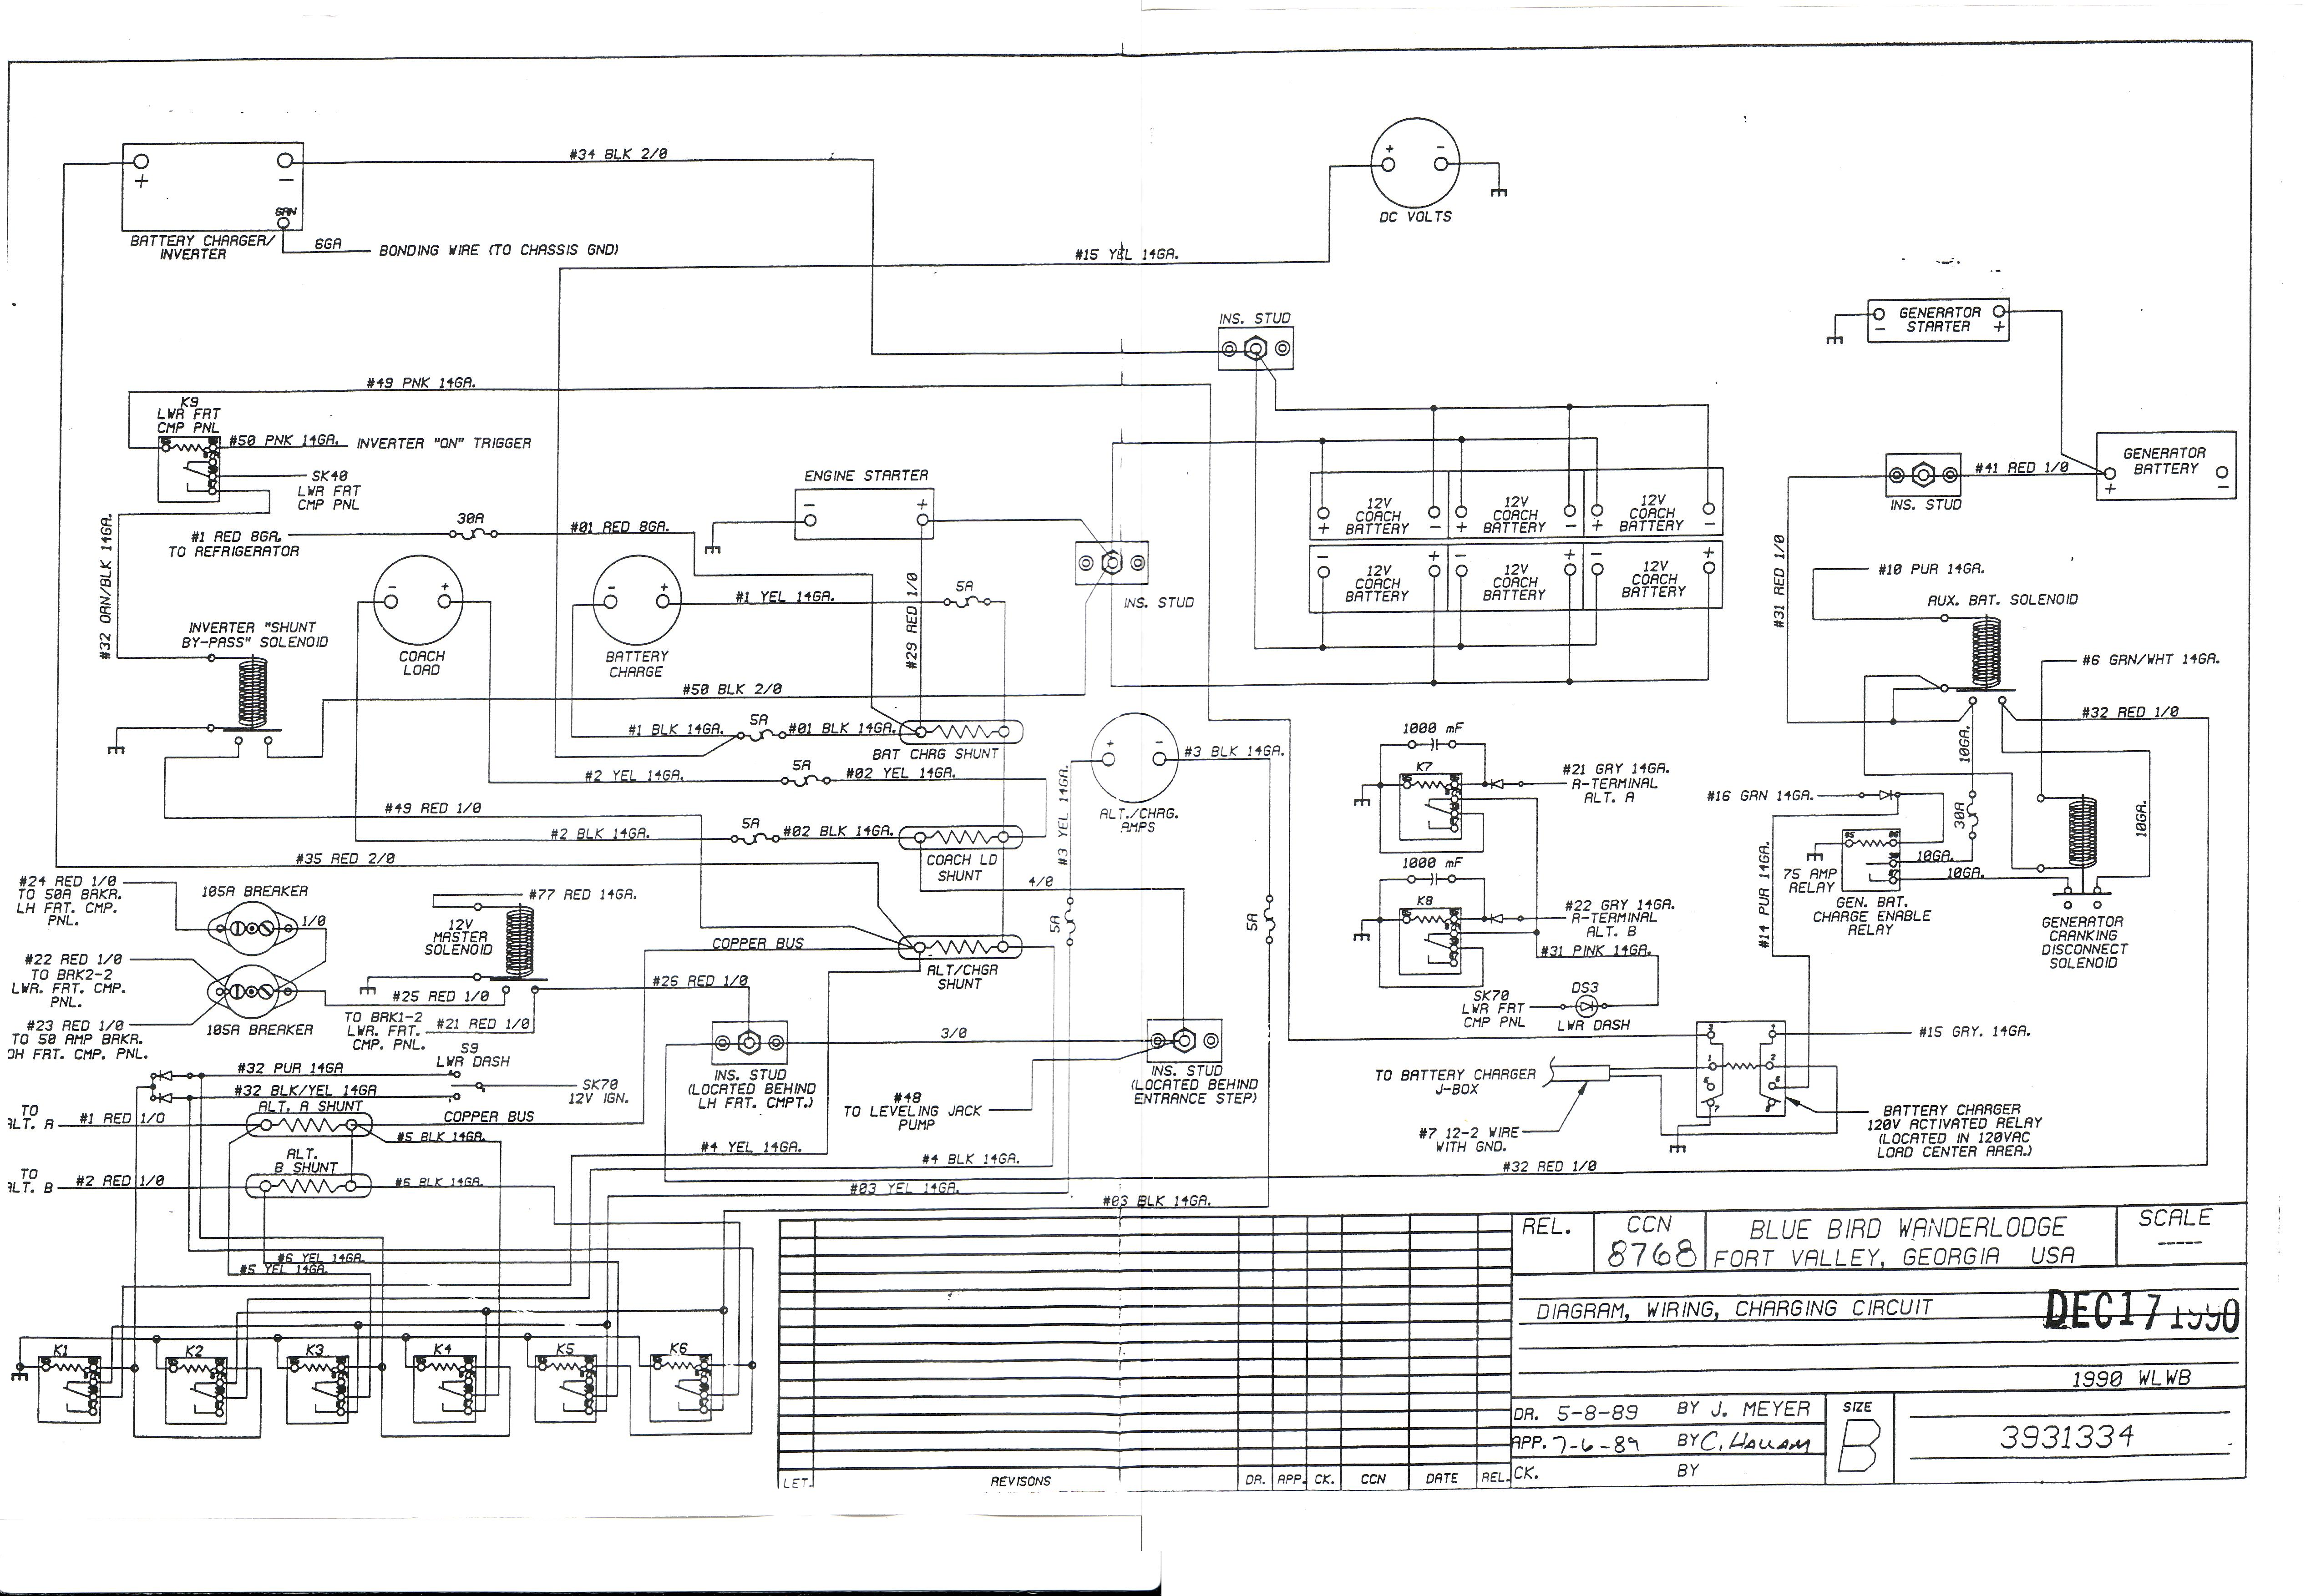 2008 Blue Bird Bus Wiring Diagrams Wire Center Air Conditioning Computer Board Circuit Mdv J140w Bpy Bluebird Collection Of Diagram U2022 Rh Saiads Co Vision School 2011